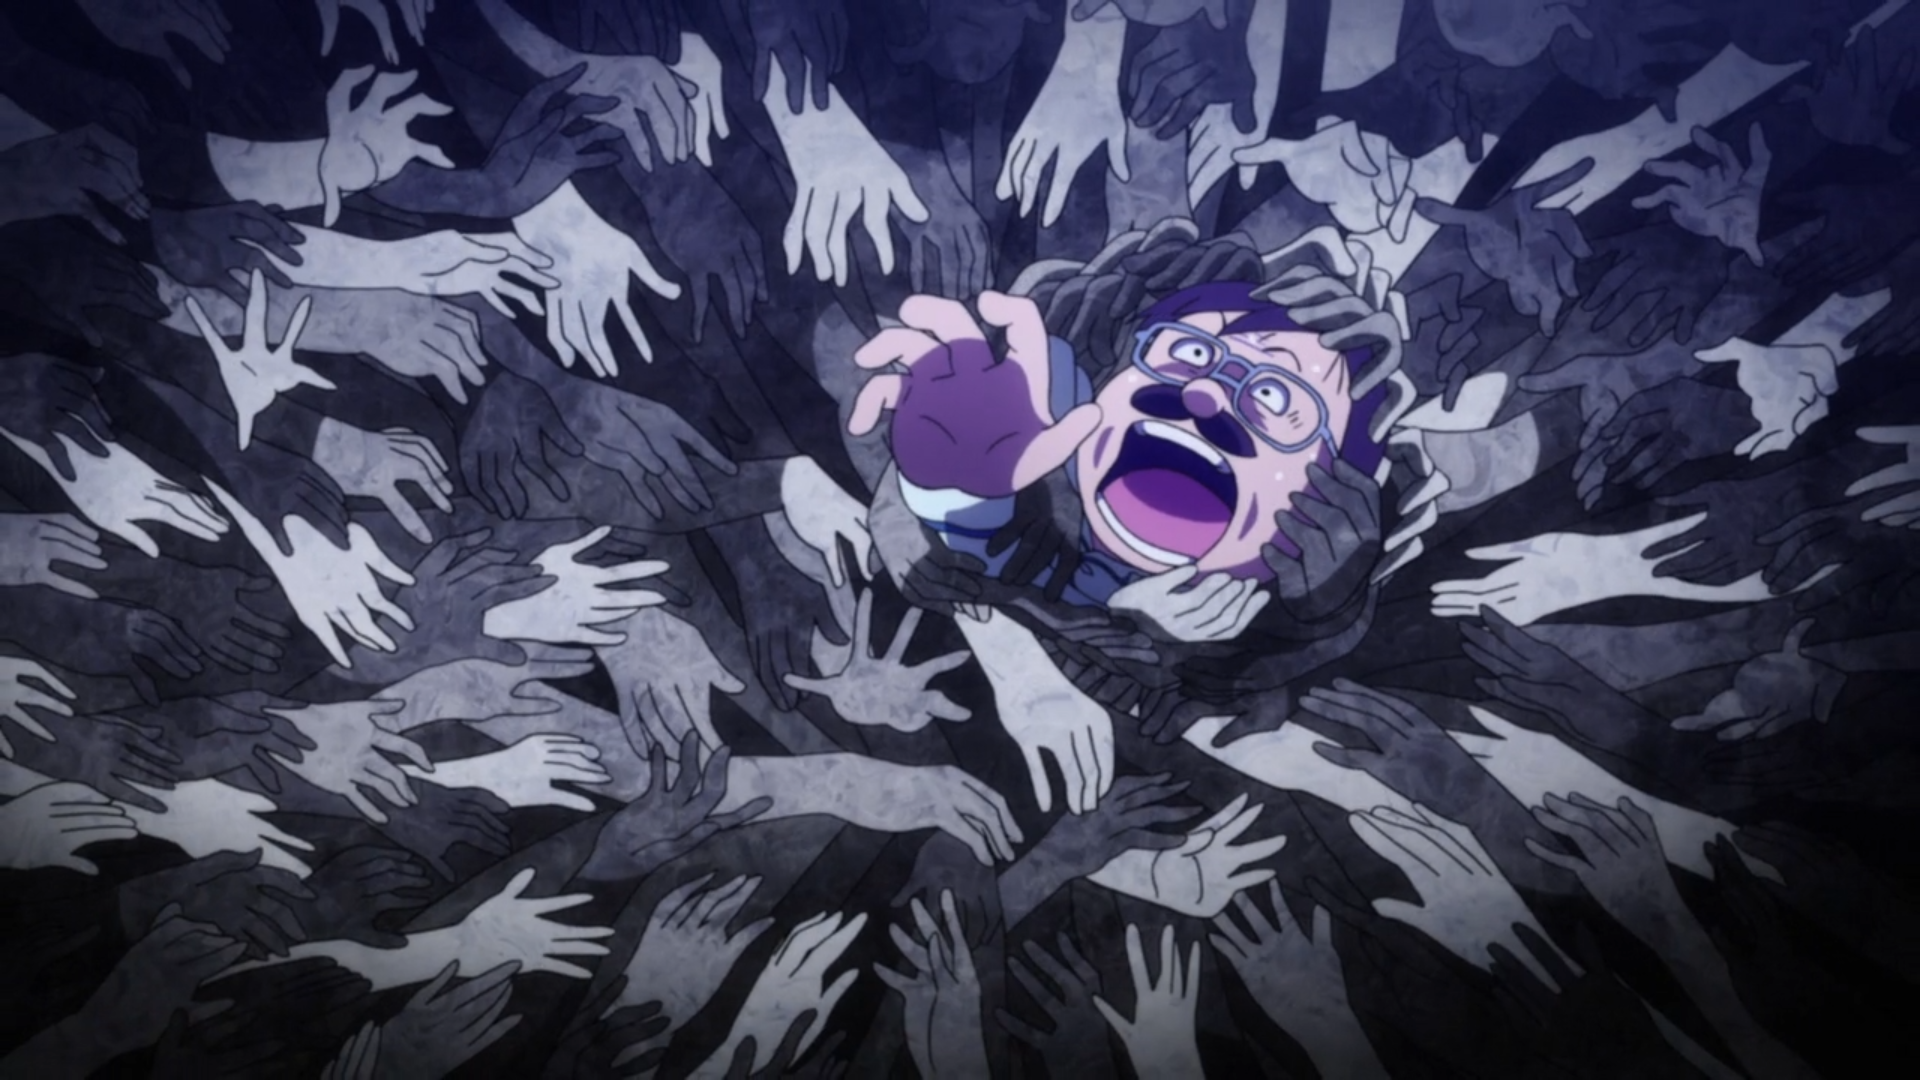 A screenwriter is engulfed in a nightmare of scrabbling hands in a scene from the 2017 The Laughing Salesman TV anime.